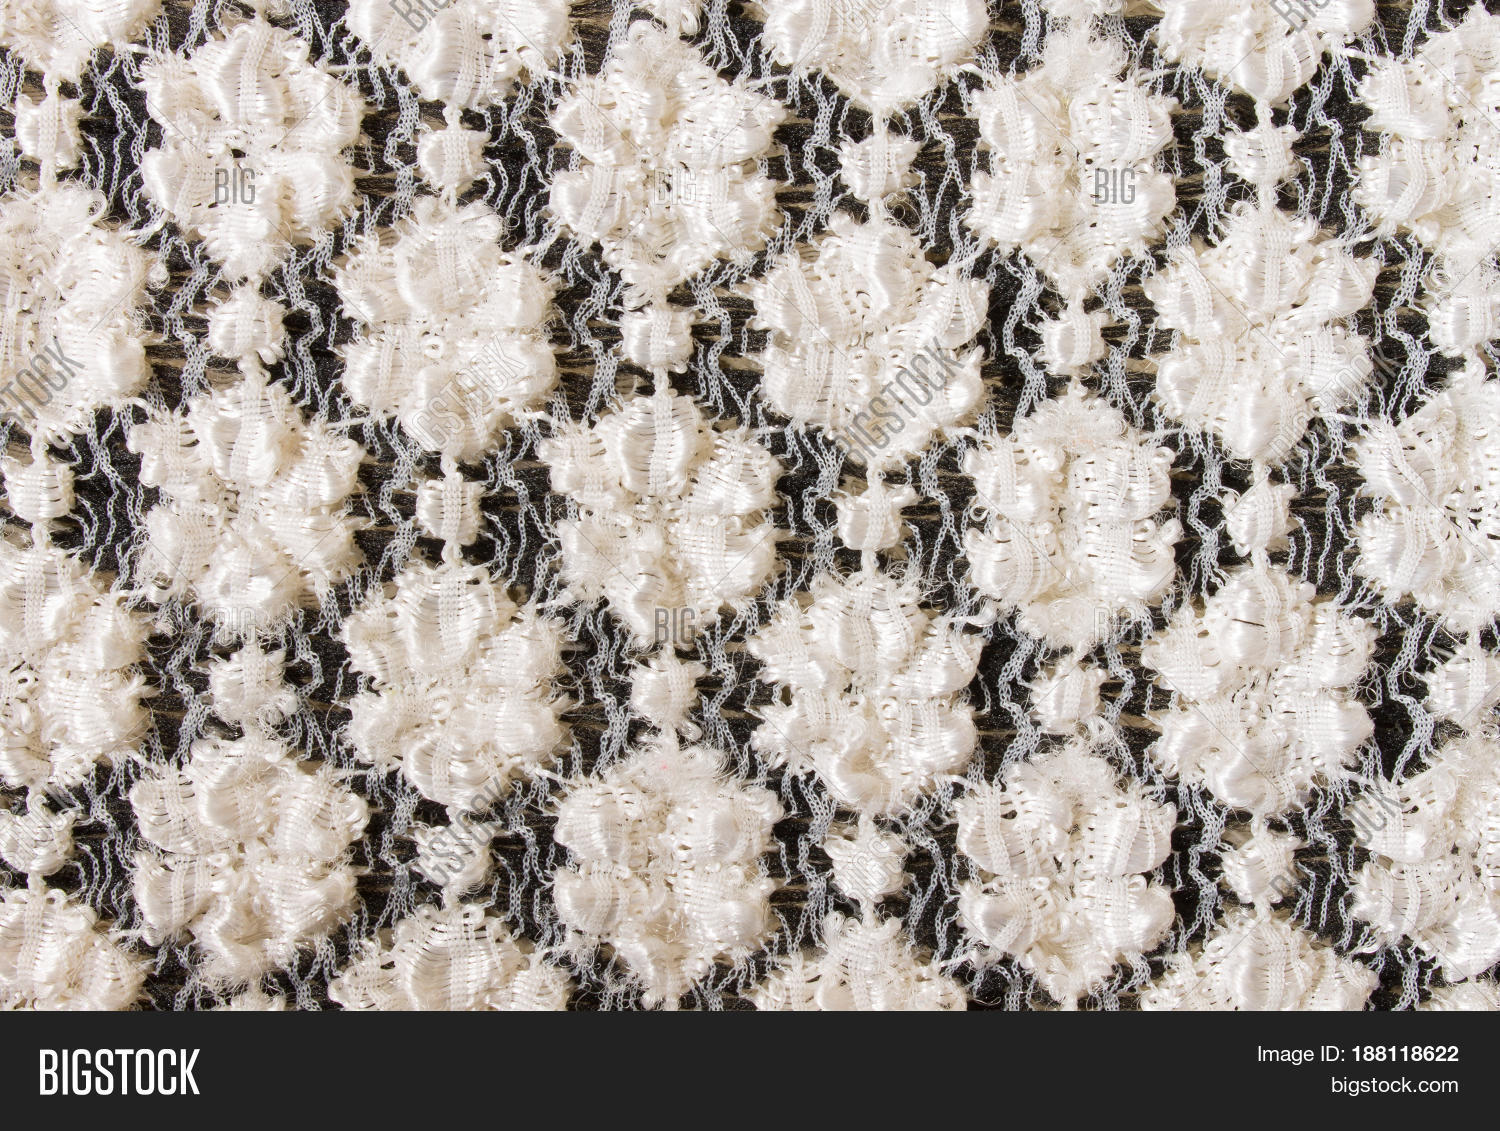 White Flower Knitting Image & Photo (Free Trial) | Bigstock